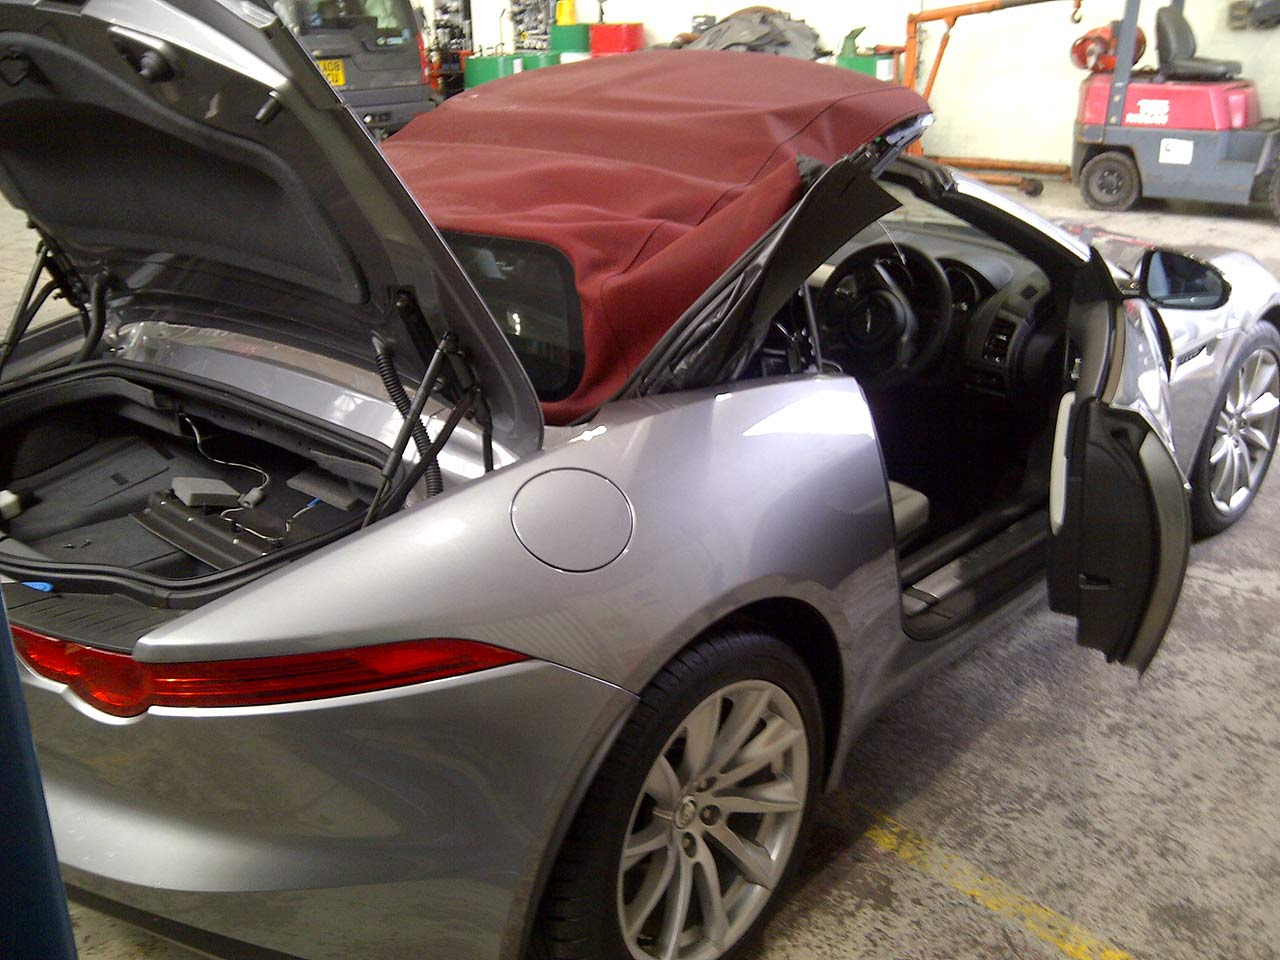 Convertible Hood Replacement Jaguar F-Type